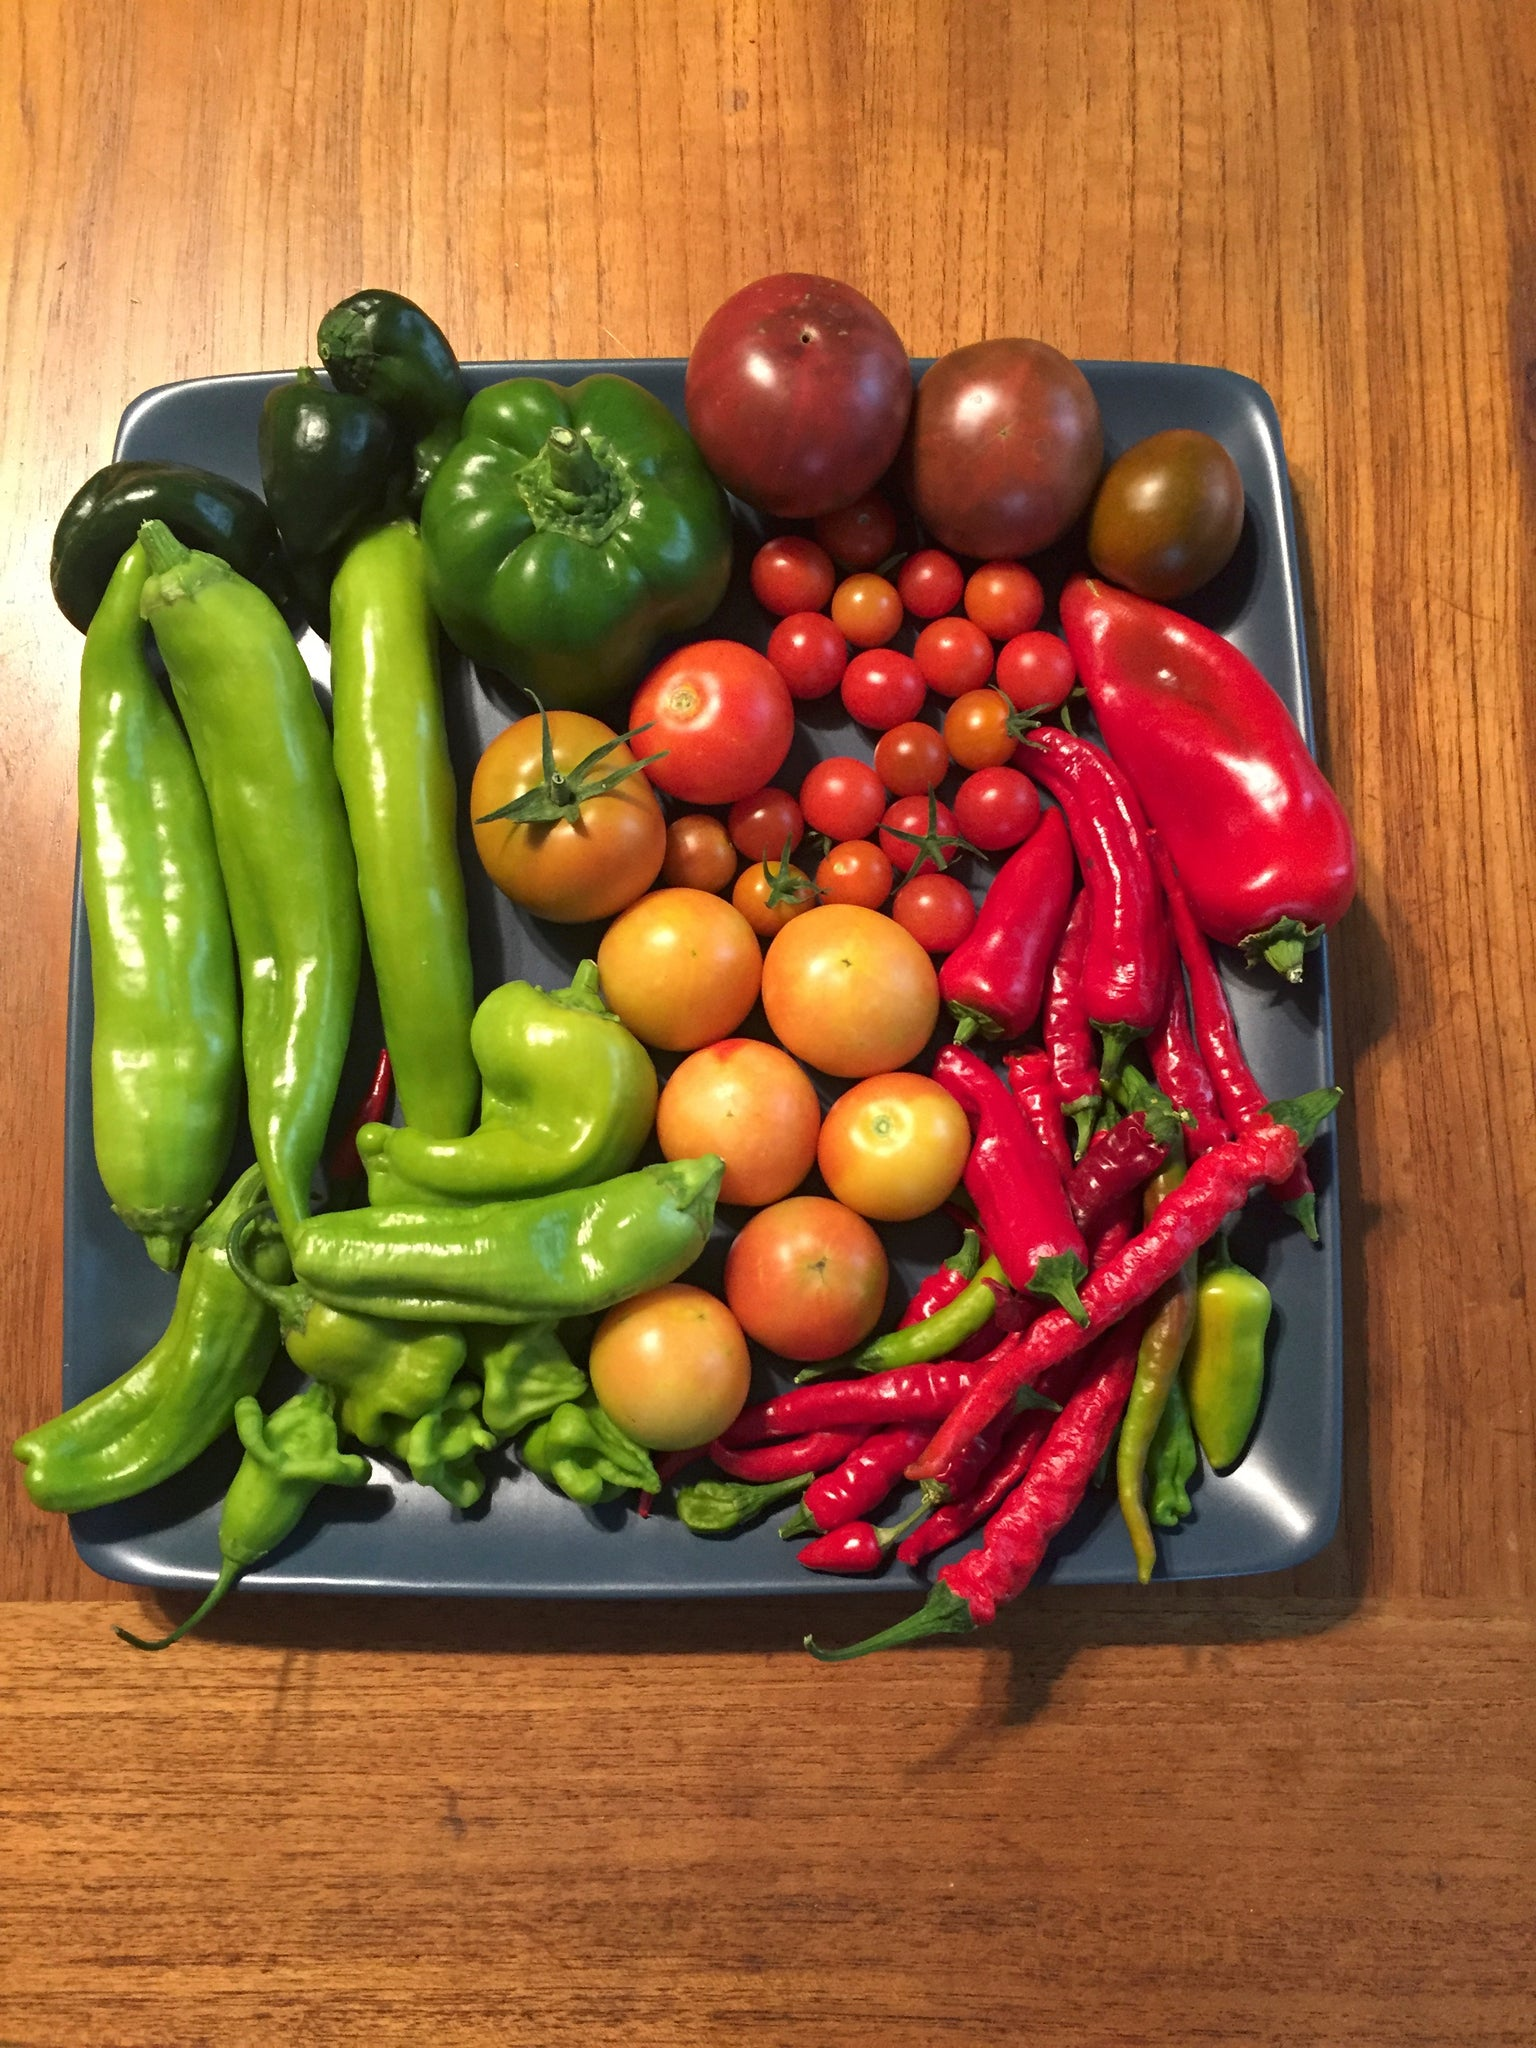 Harvest vegetables at the right time